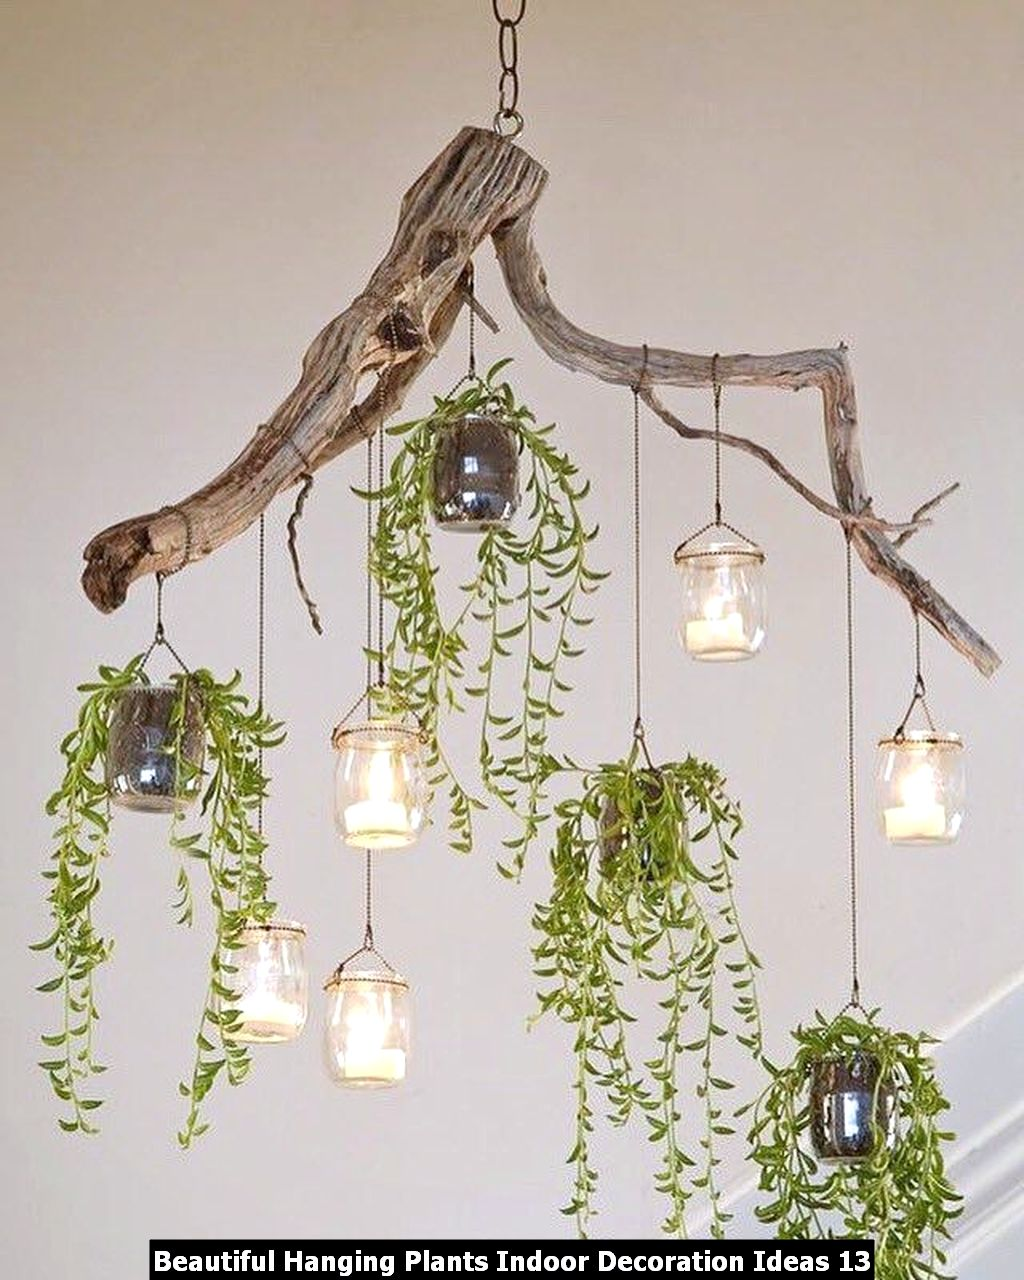 Beautiful Hanging Plants Indoor Decoration Ideas 13